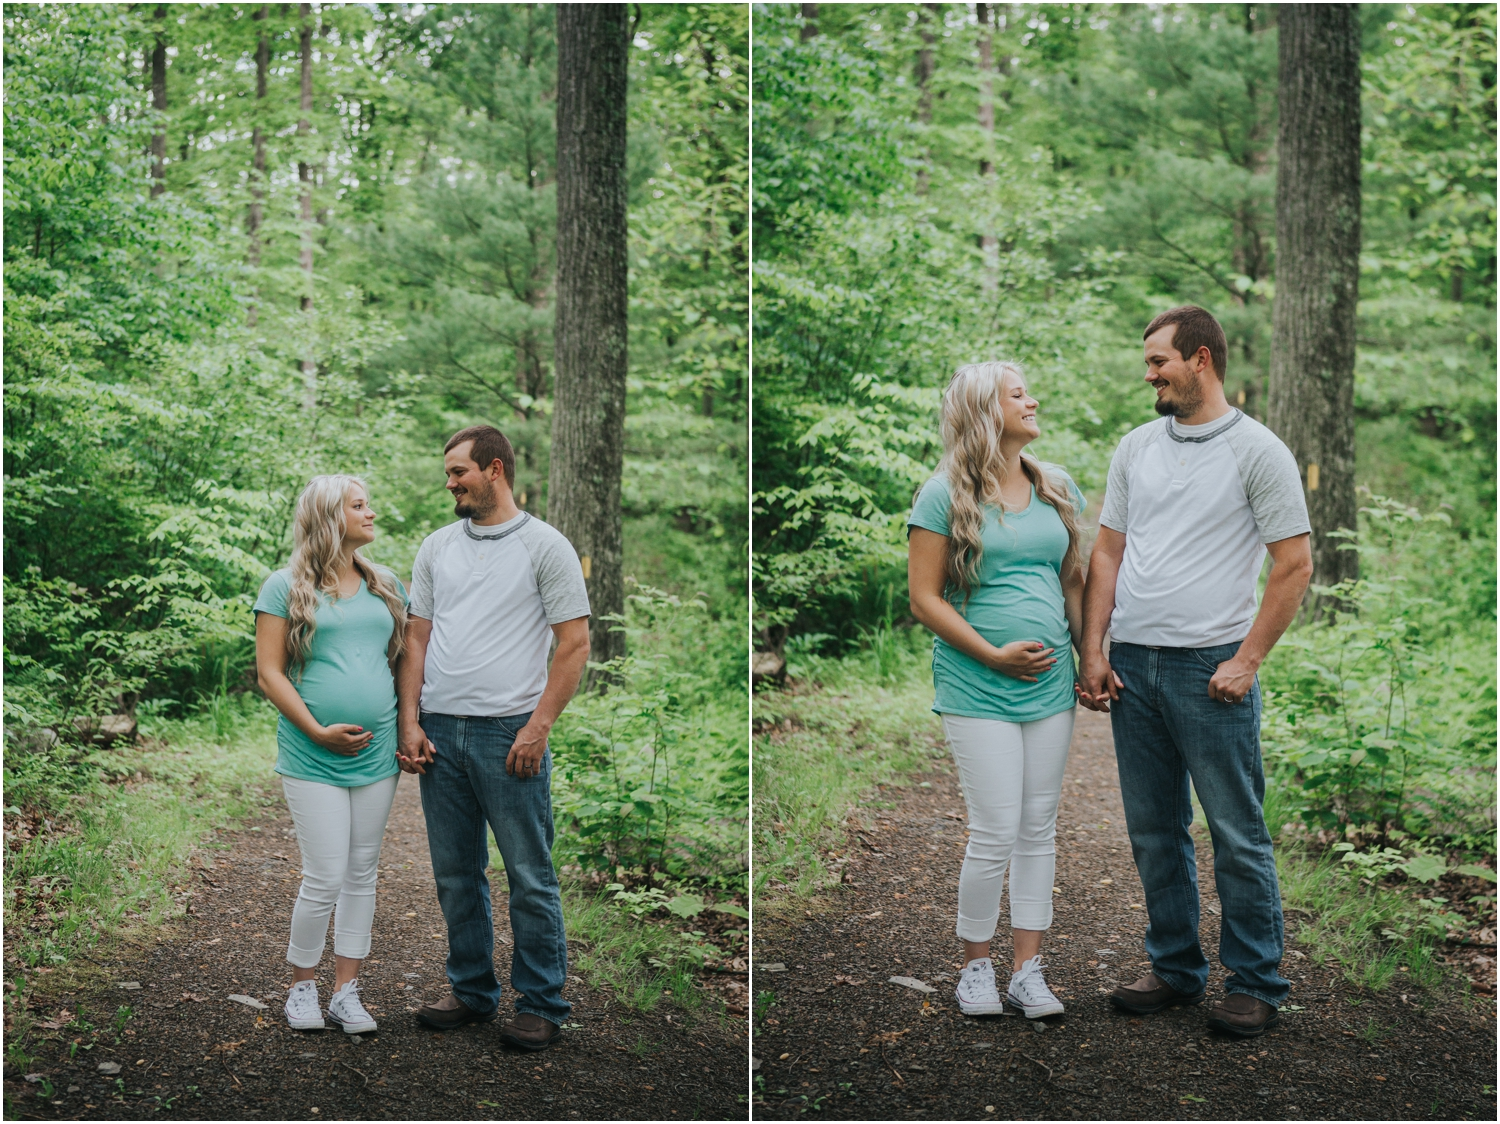 katy-sergent-photography-johnson-city-tennessee-northest-tn-elopement-intimate-wedding-photographer-outdoors-adventurous-couples-adventure-lovers_0012.jpg